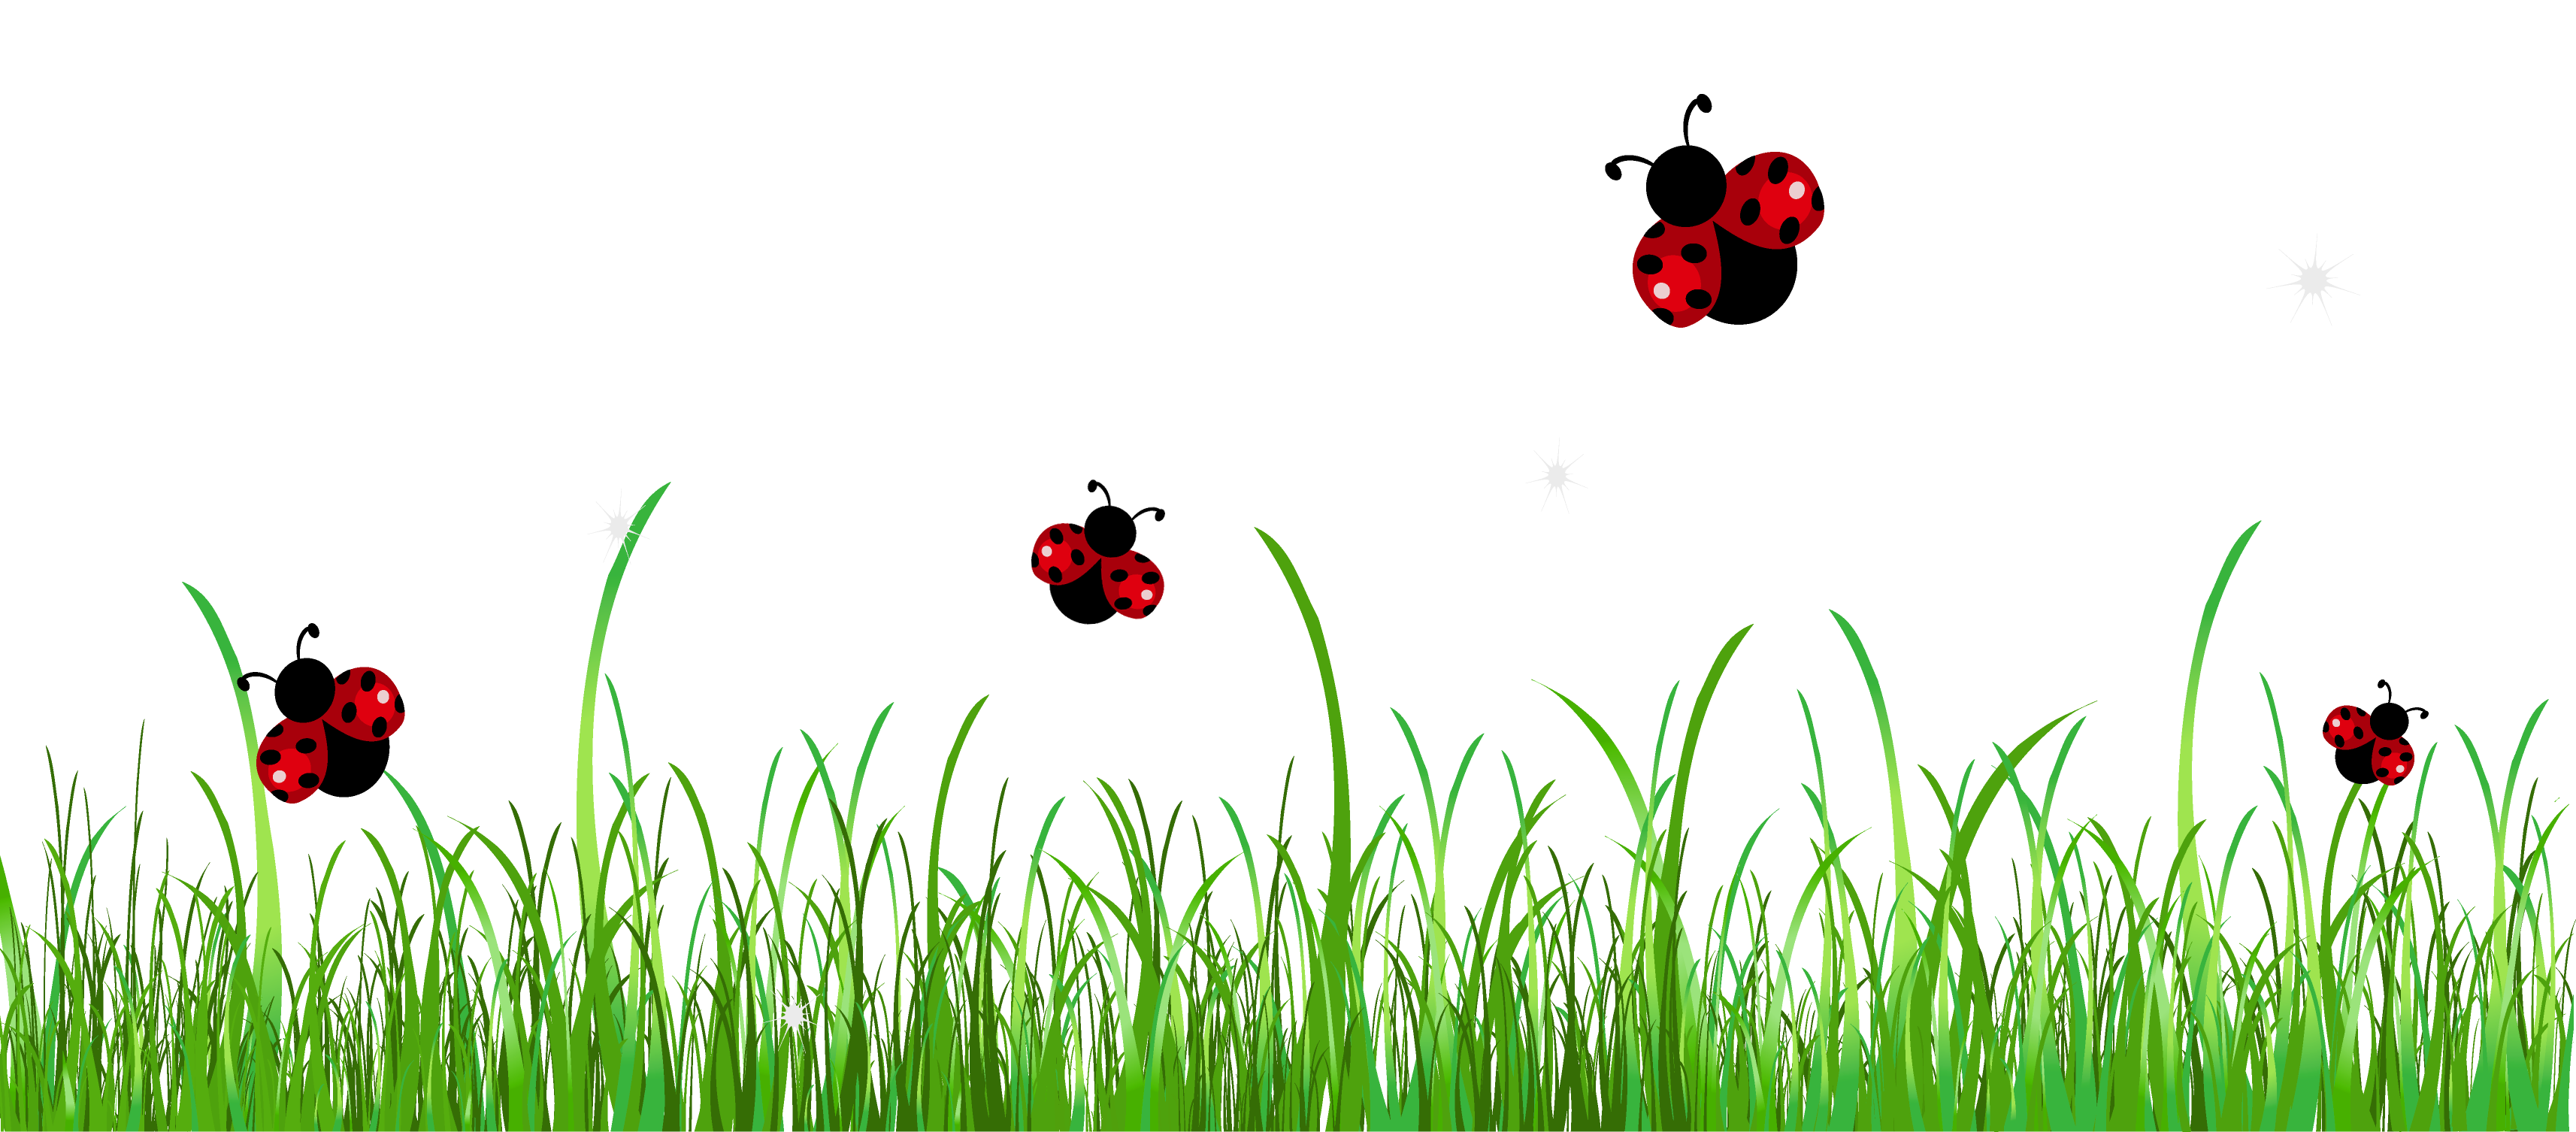 Ladybug hd images all. Ladybugs clipart garden creature